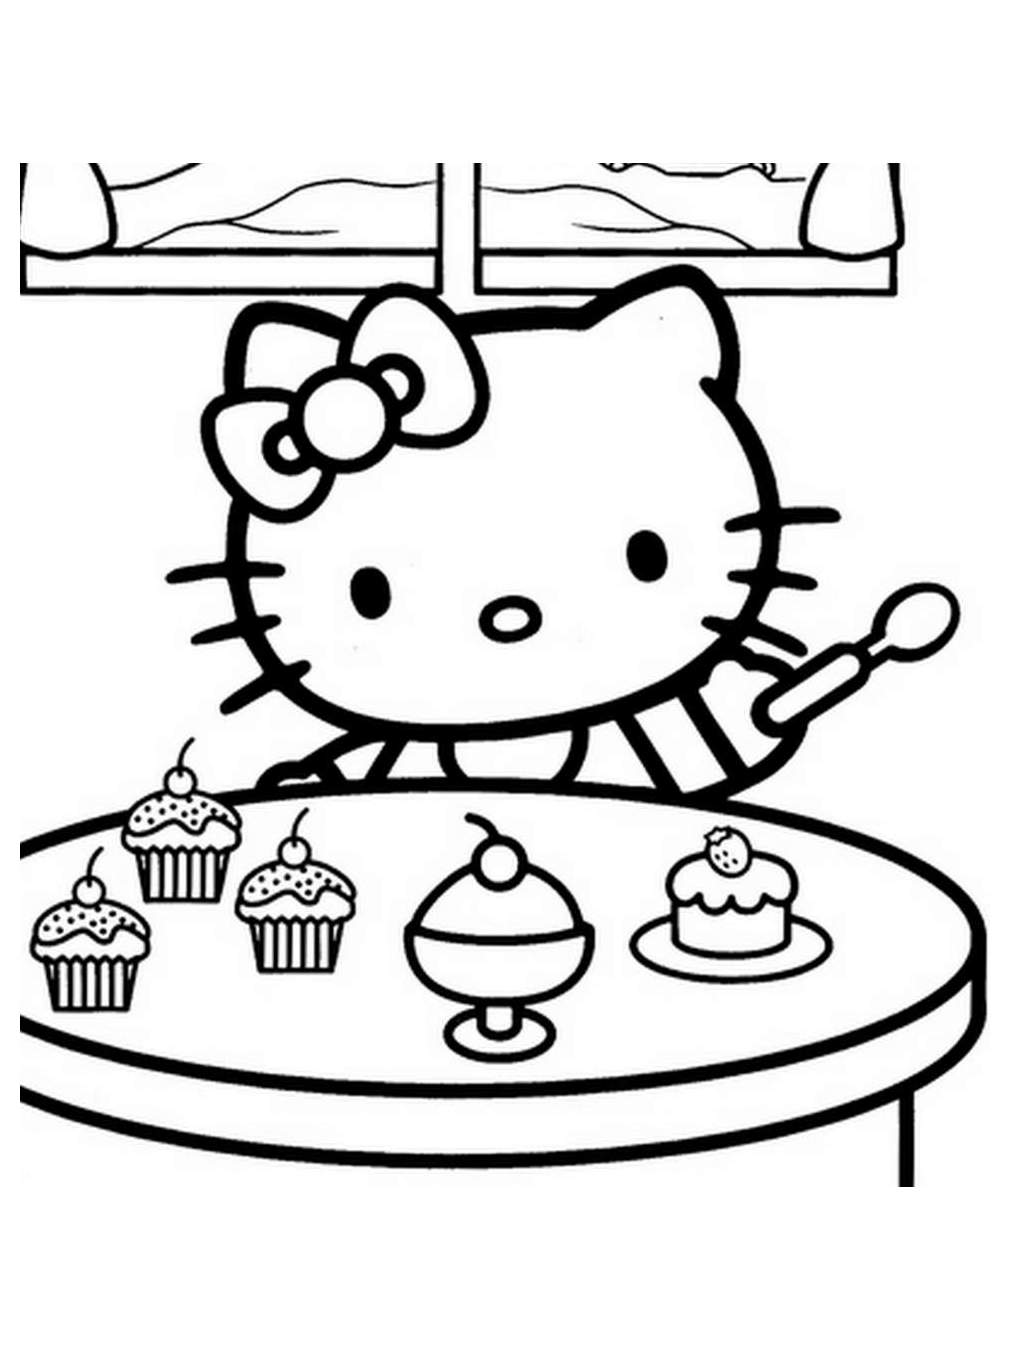 hello kitty free coloring pages hello kitty coloring pages download and print hello kitty kitty pages coloring hello free